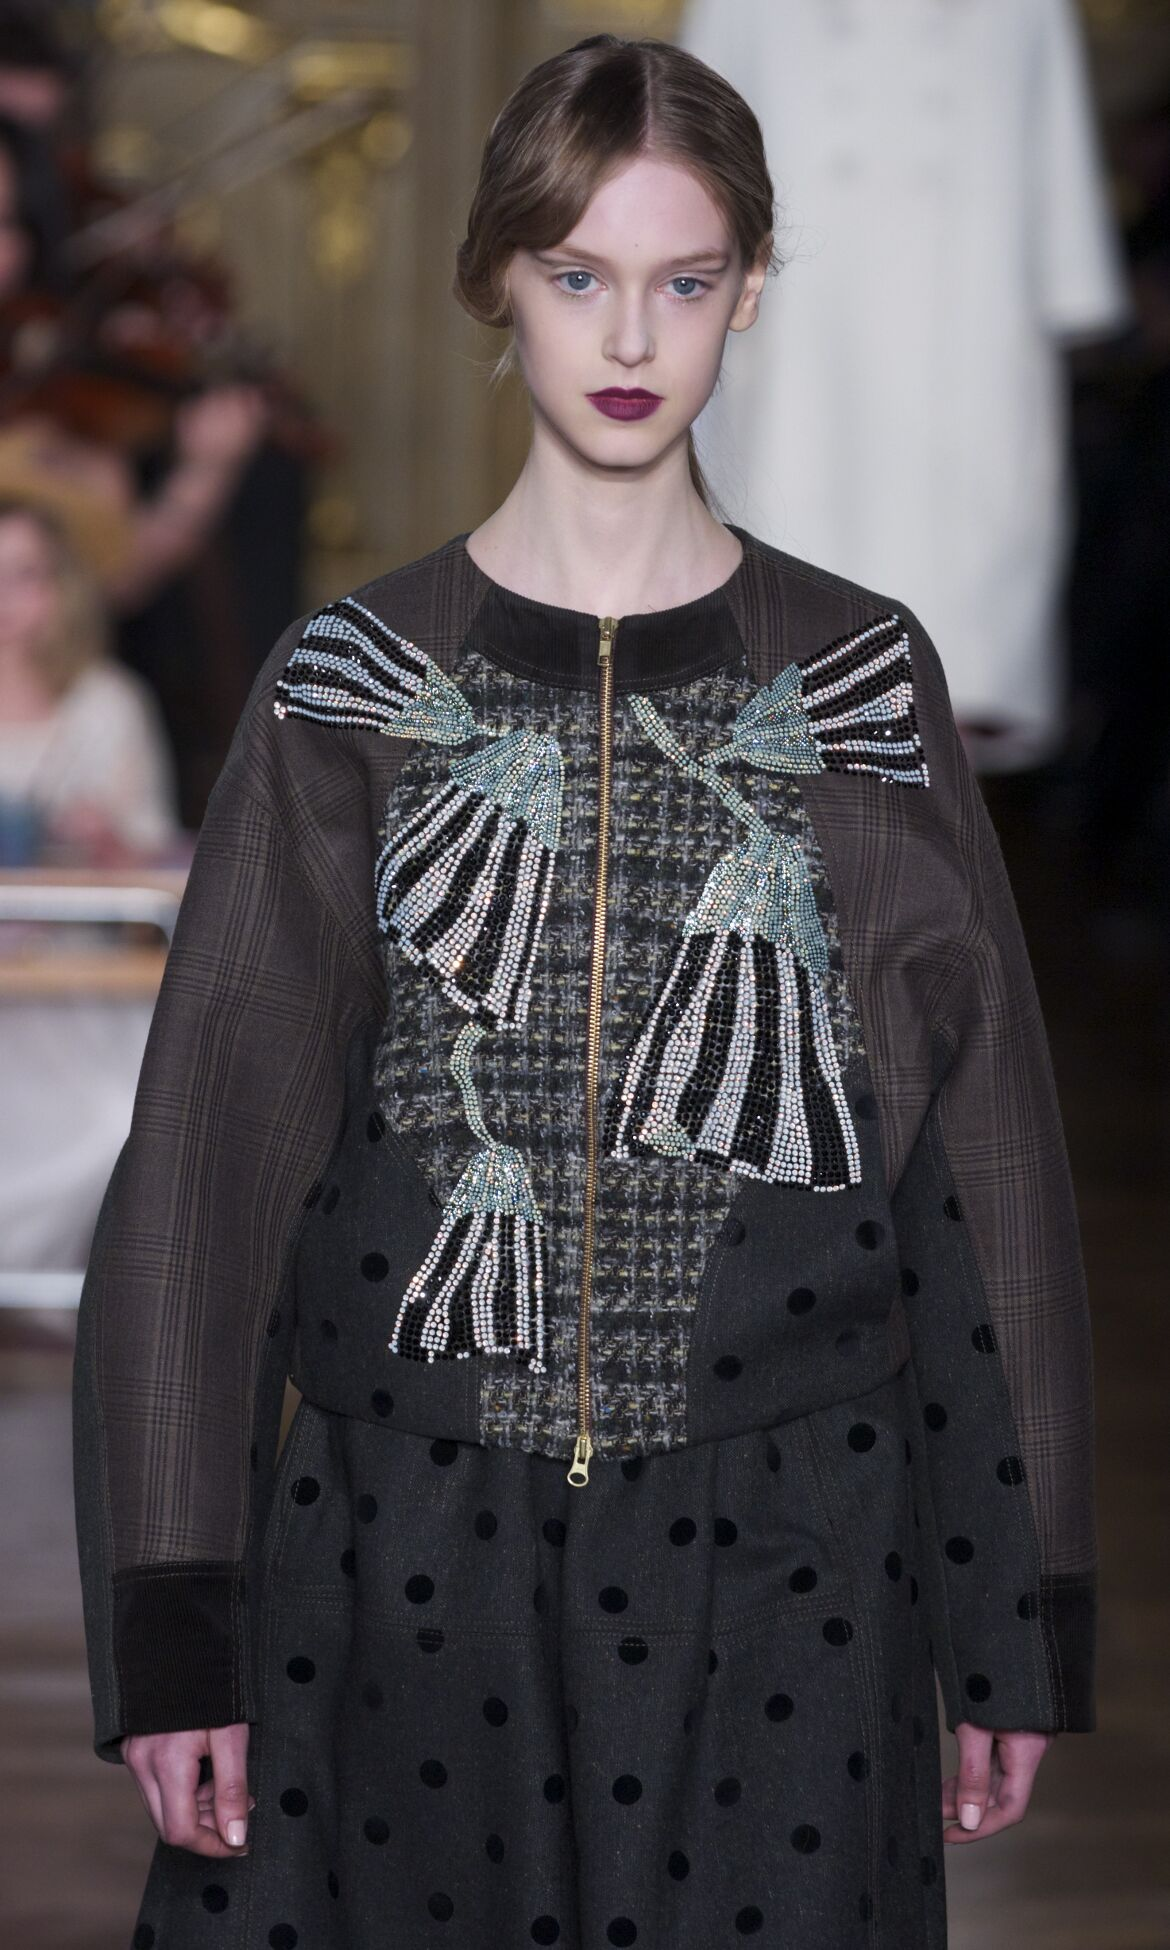 Antonio Marras Fall 2013 Catwalk